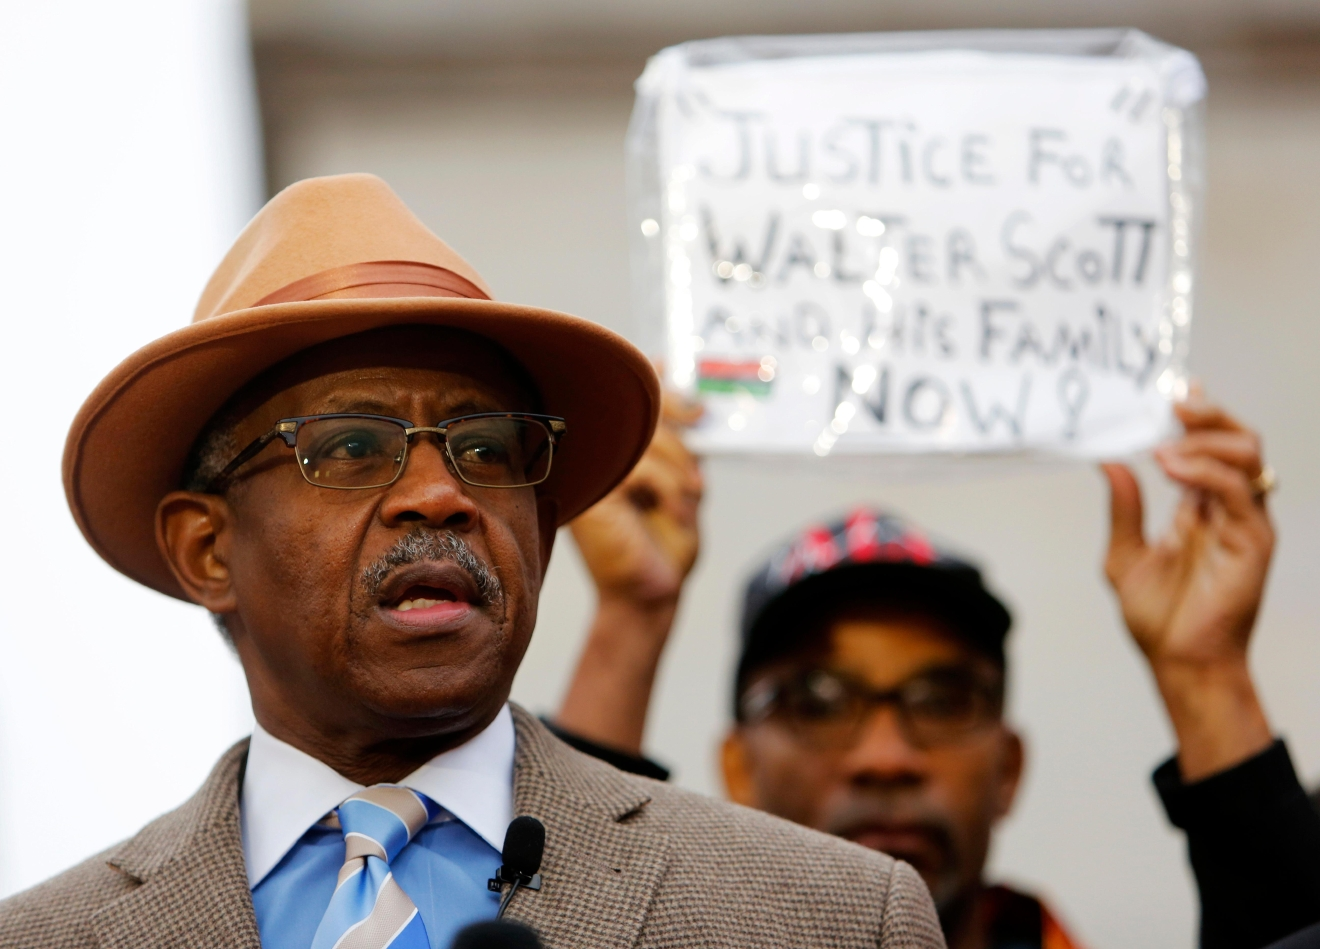 The Rev. Nelson B. Rivers III, with the National Action Network, speaks during a prayer vigil in front of the Charleston County Courthouse as the jury deliberates in the Michael Slager trial Monday, Dec. 5, 2016, in Charleston, S.C. (AP Photo/Mic Smith)